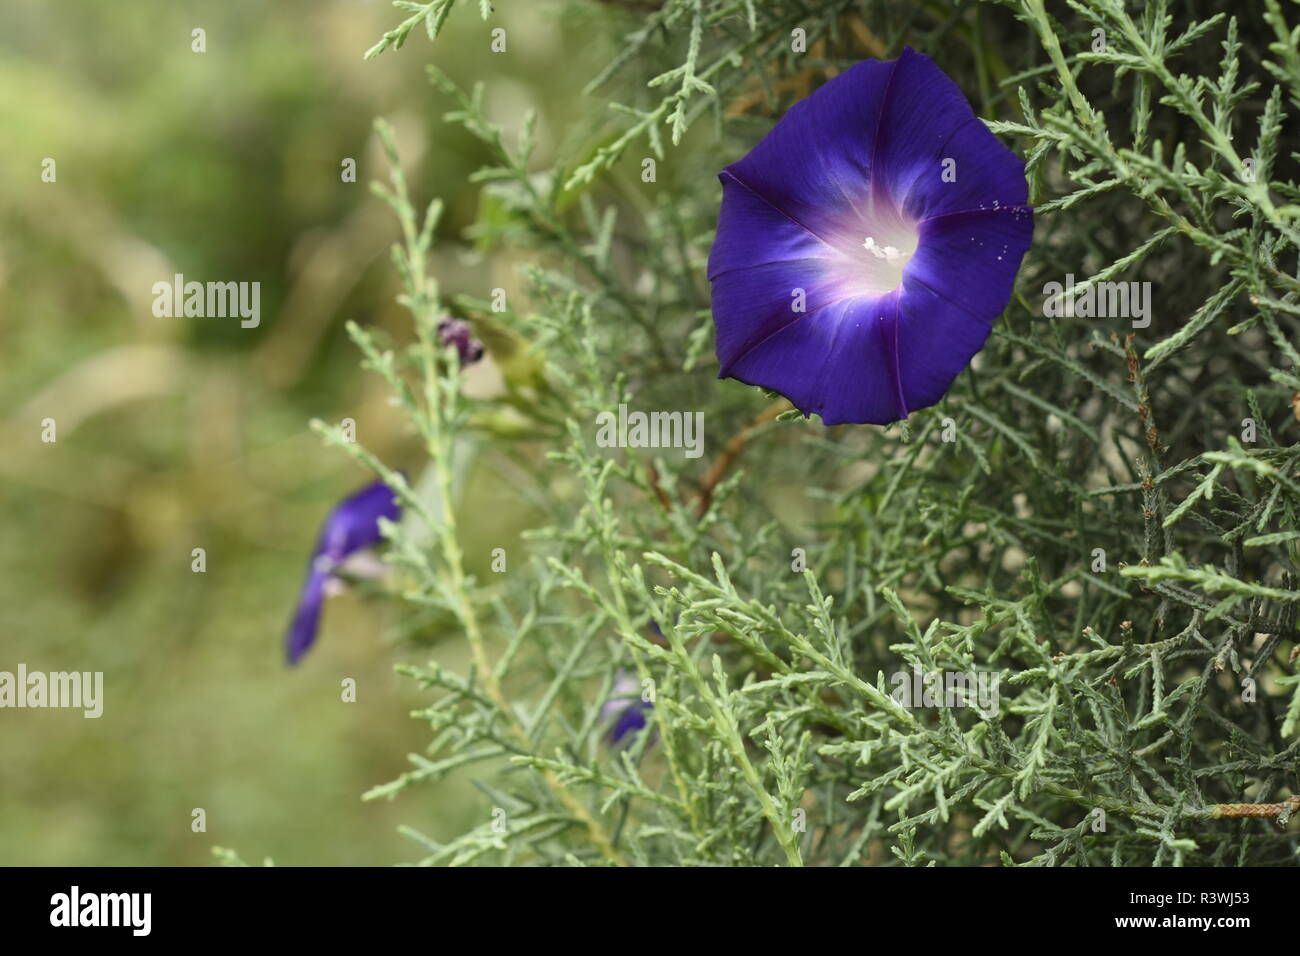 Morning-Glory, in the family Convolvulaceae, contains at least 50 genera and more than 1000 species. - Stock Image